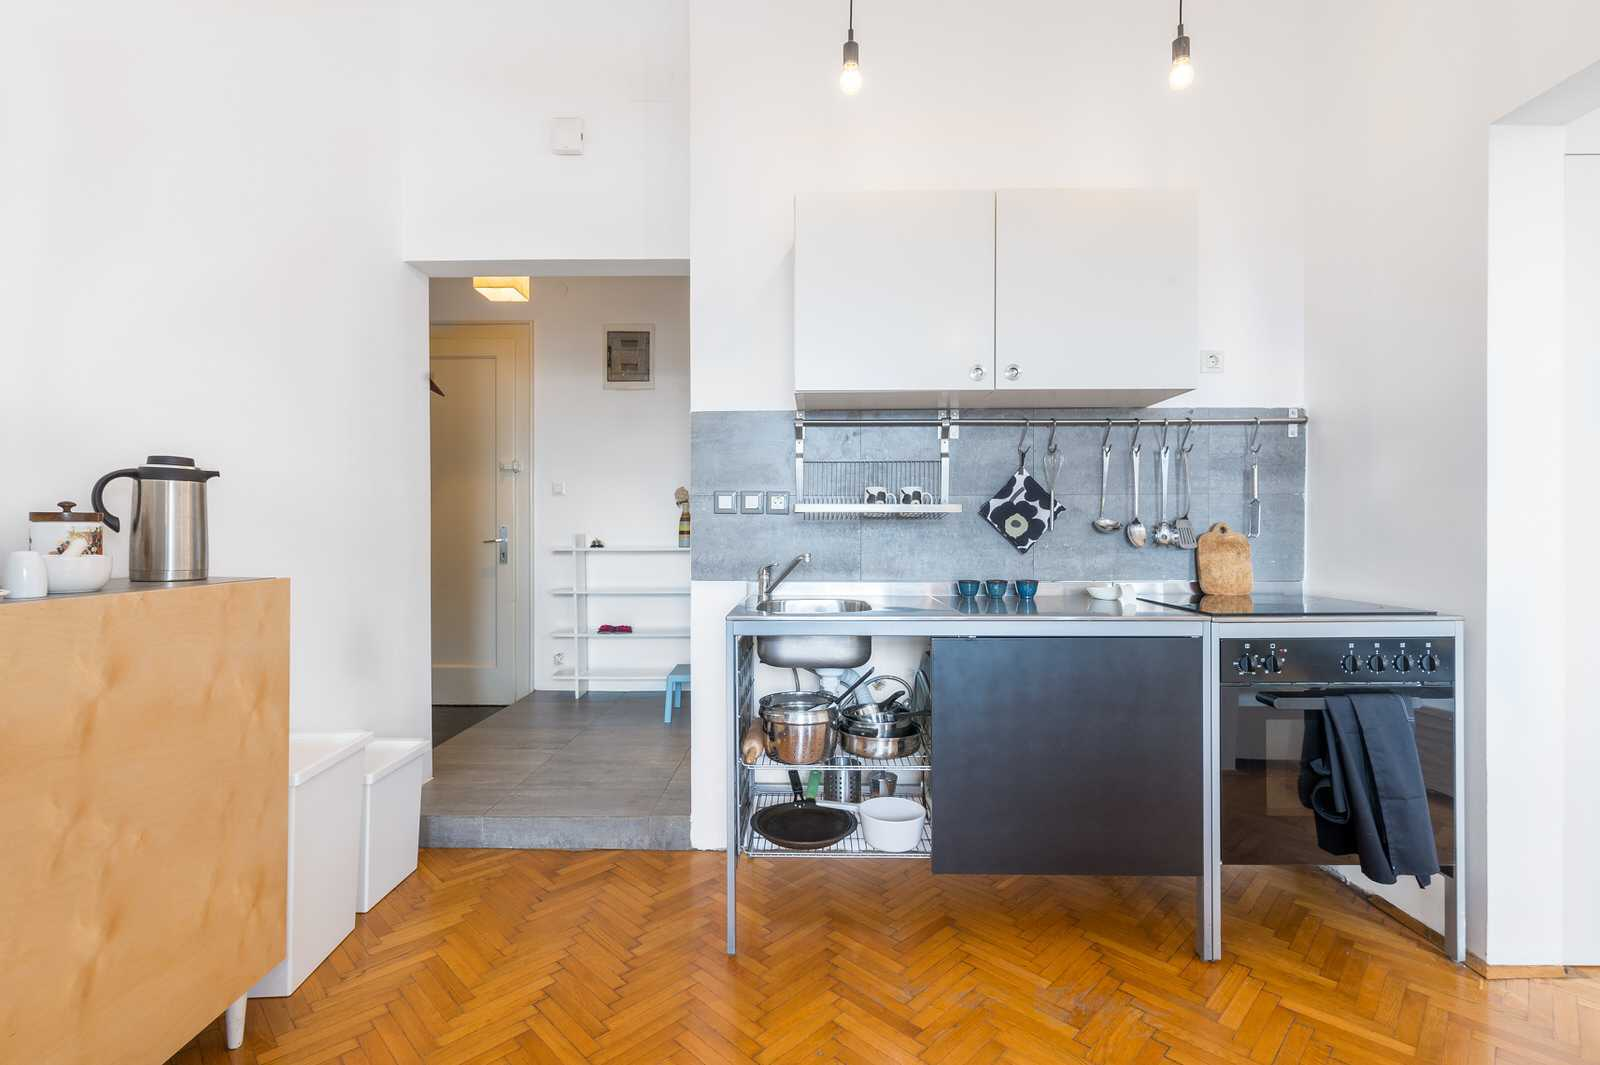 There is a small but fully functional kitchen.